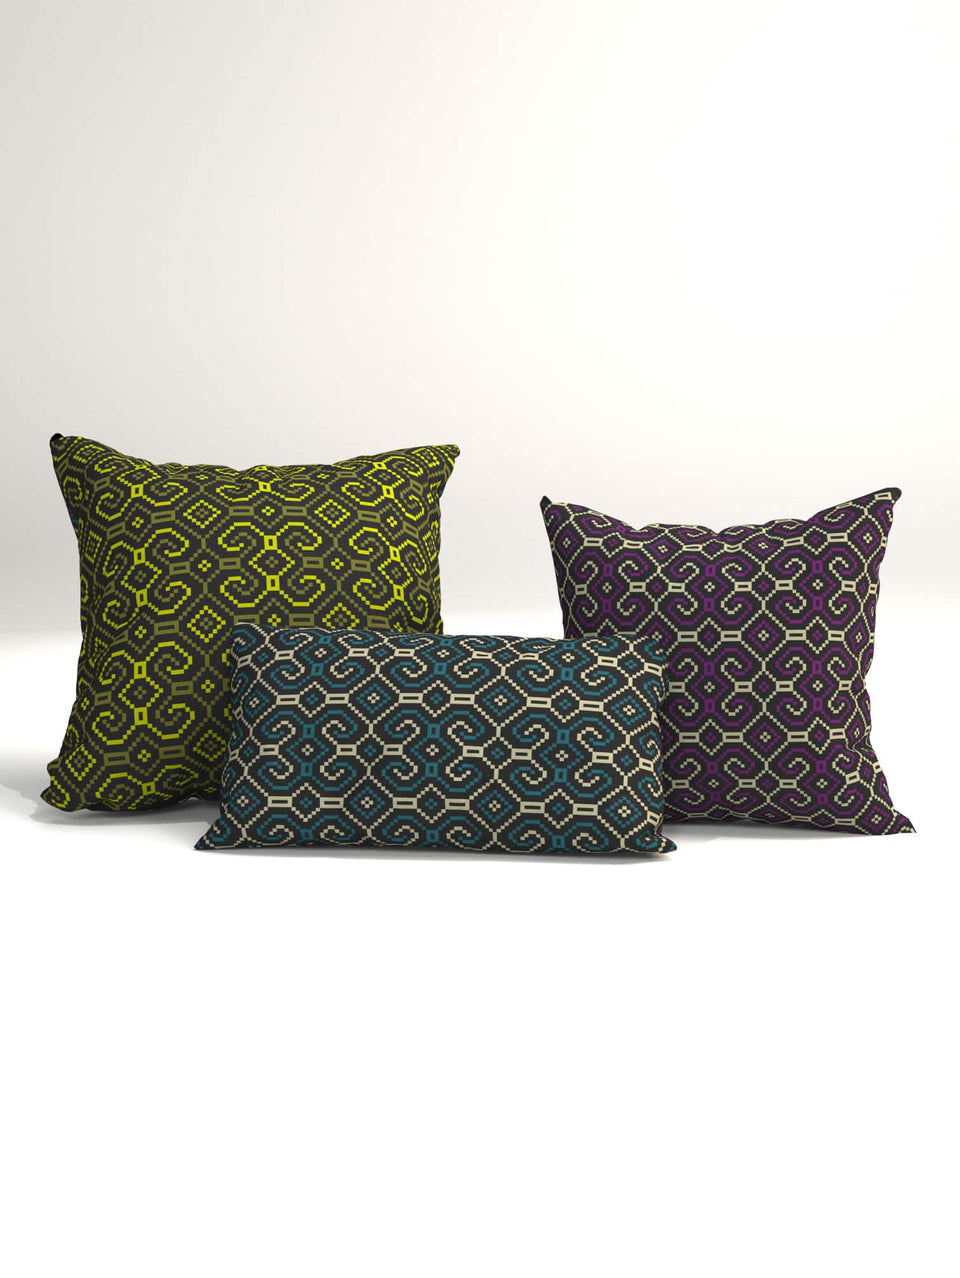 Shipibo-Conibo Cushion - Purple Olive on Black